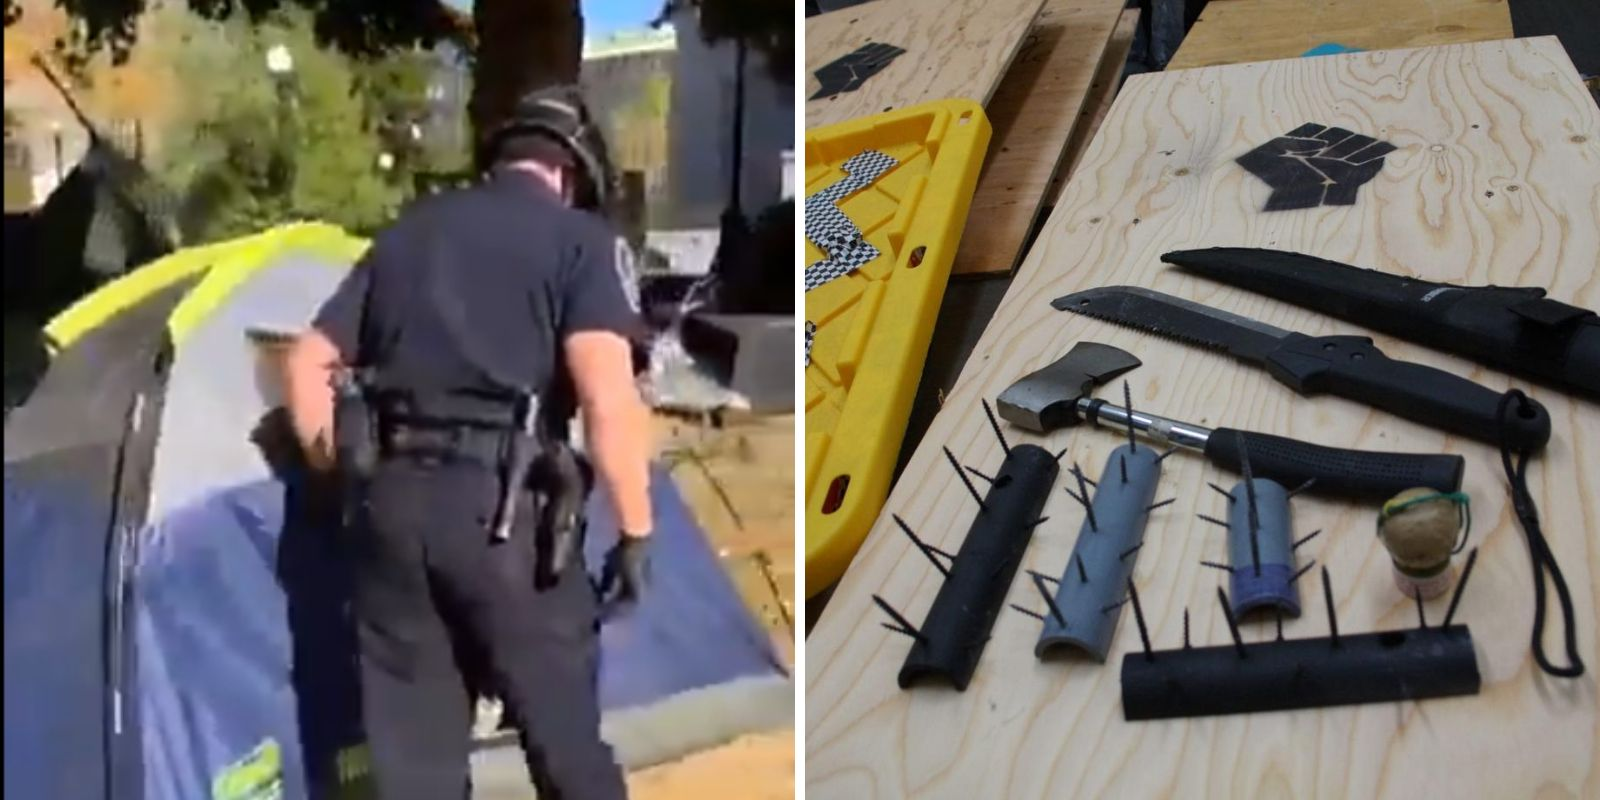 REVEALED: Antifa stored weapons in Seattle occupied park